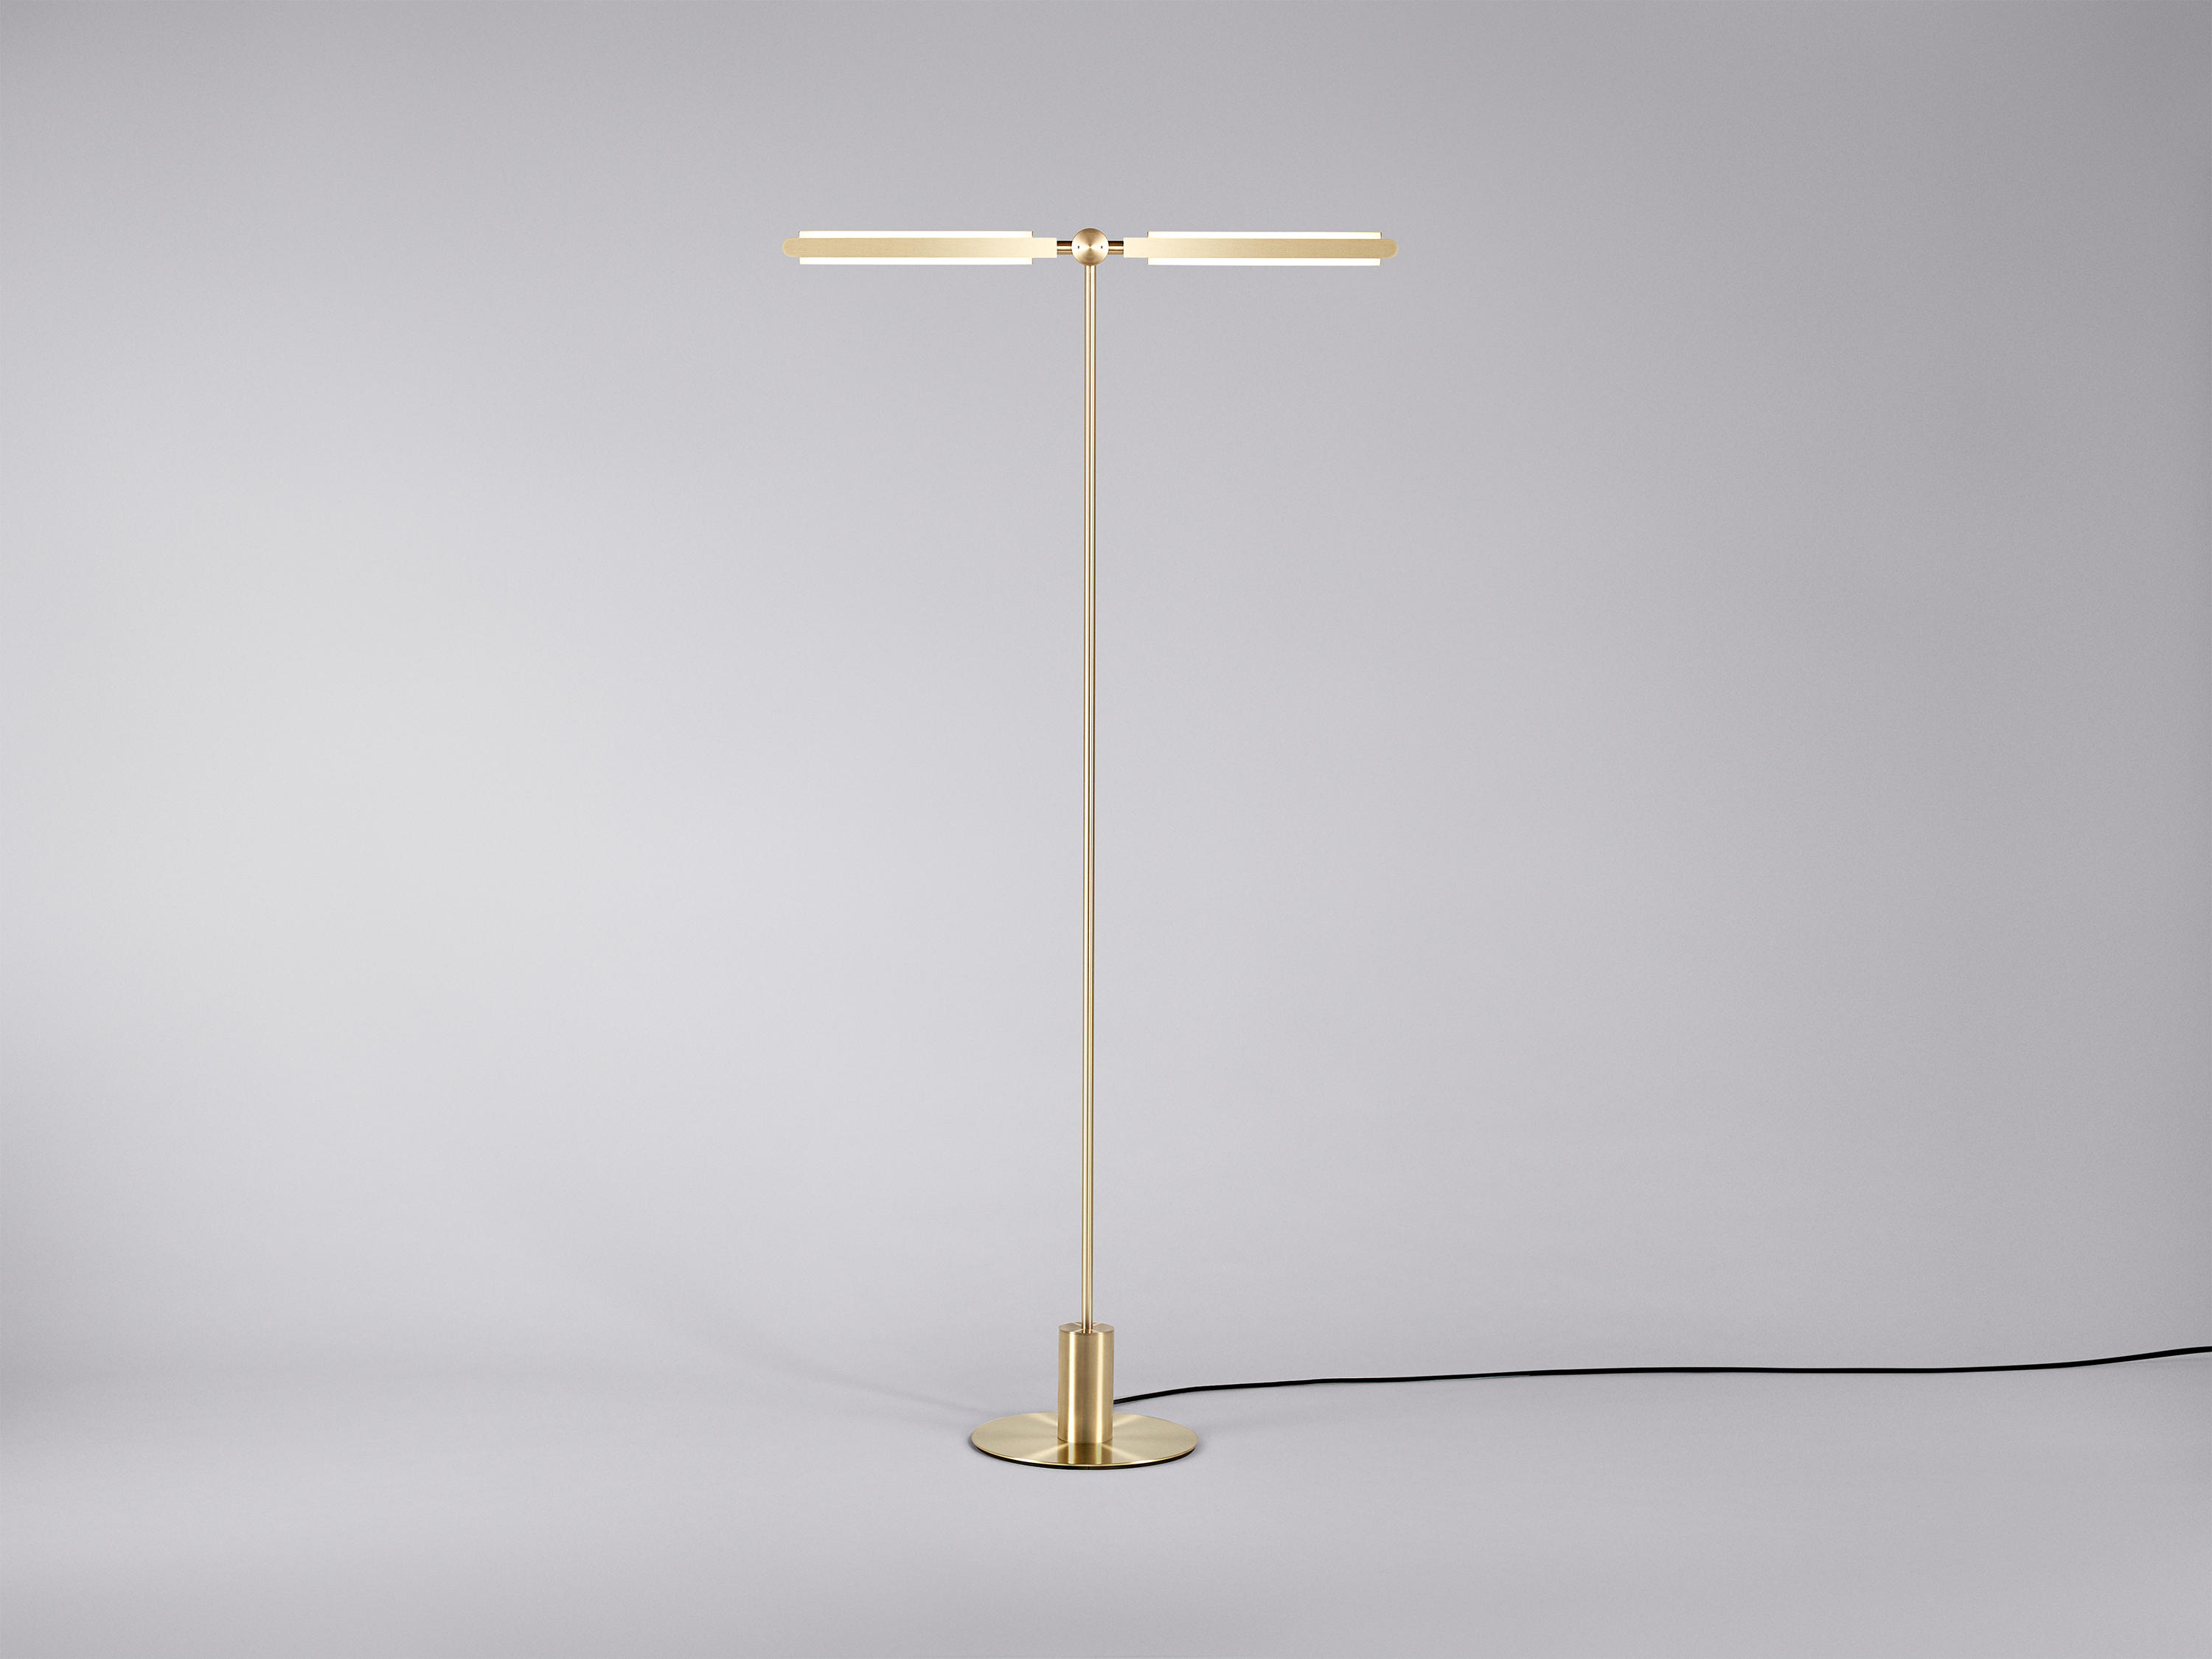 Pris t floor lamp lampade piantana pelle architonic